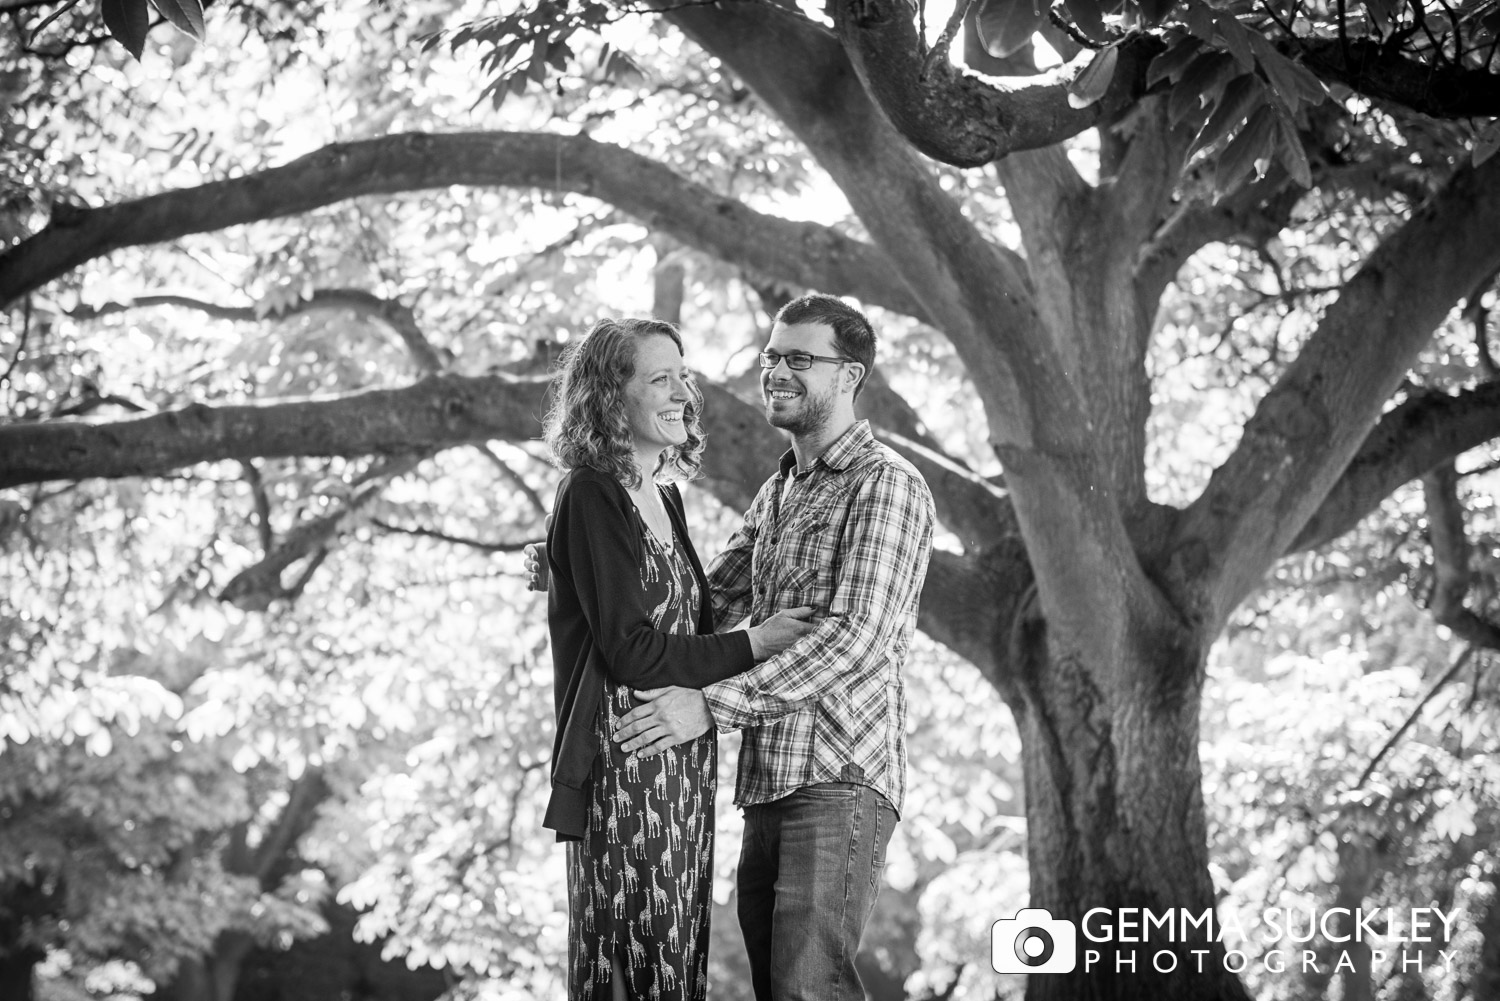 Photos of a coule during their engagement shoot in harrogate